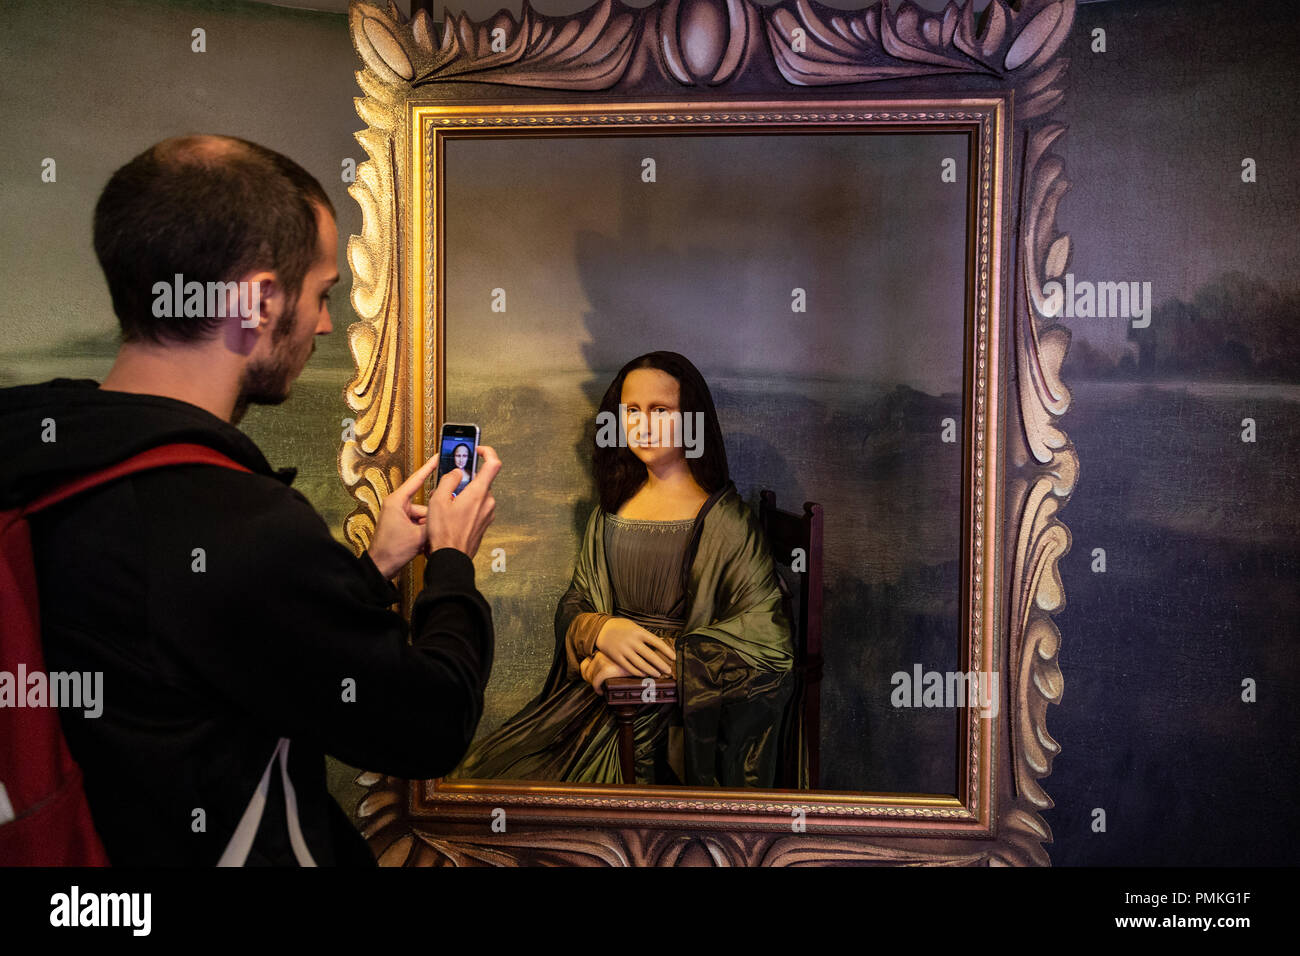 Wax figur of The Mona Lisa or La Gioconda, in Madame Tussauds museum in Amsterdam, Netherlands - Stock Image